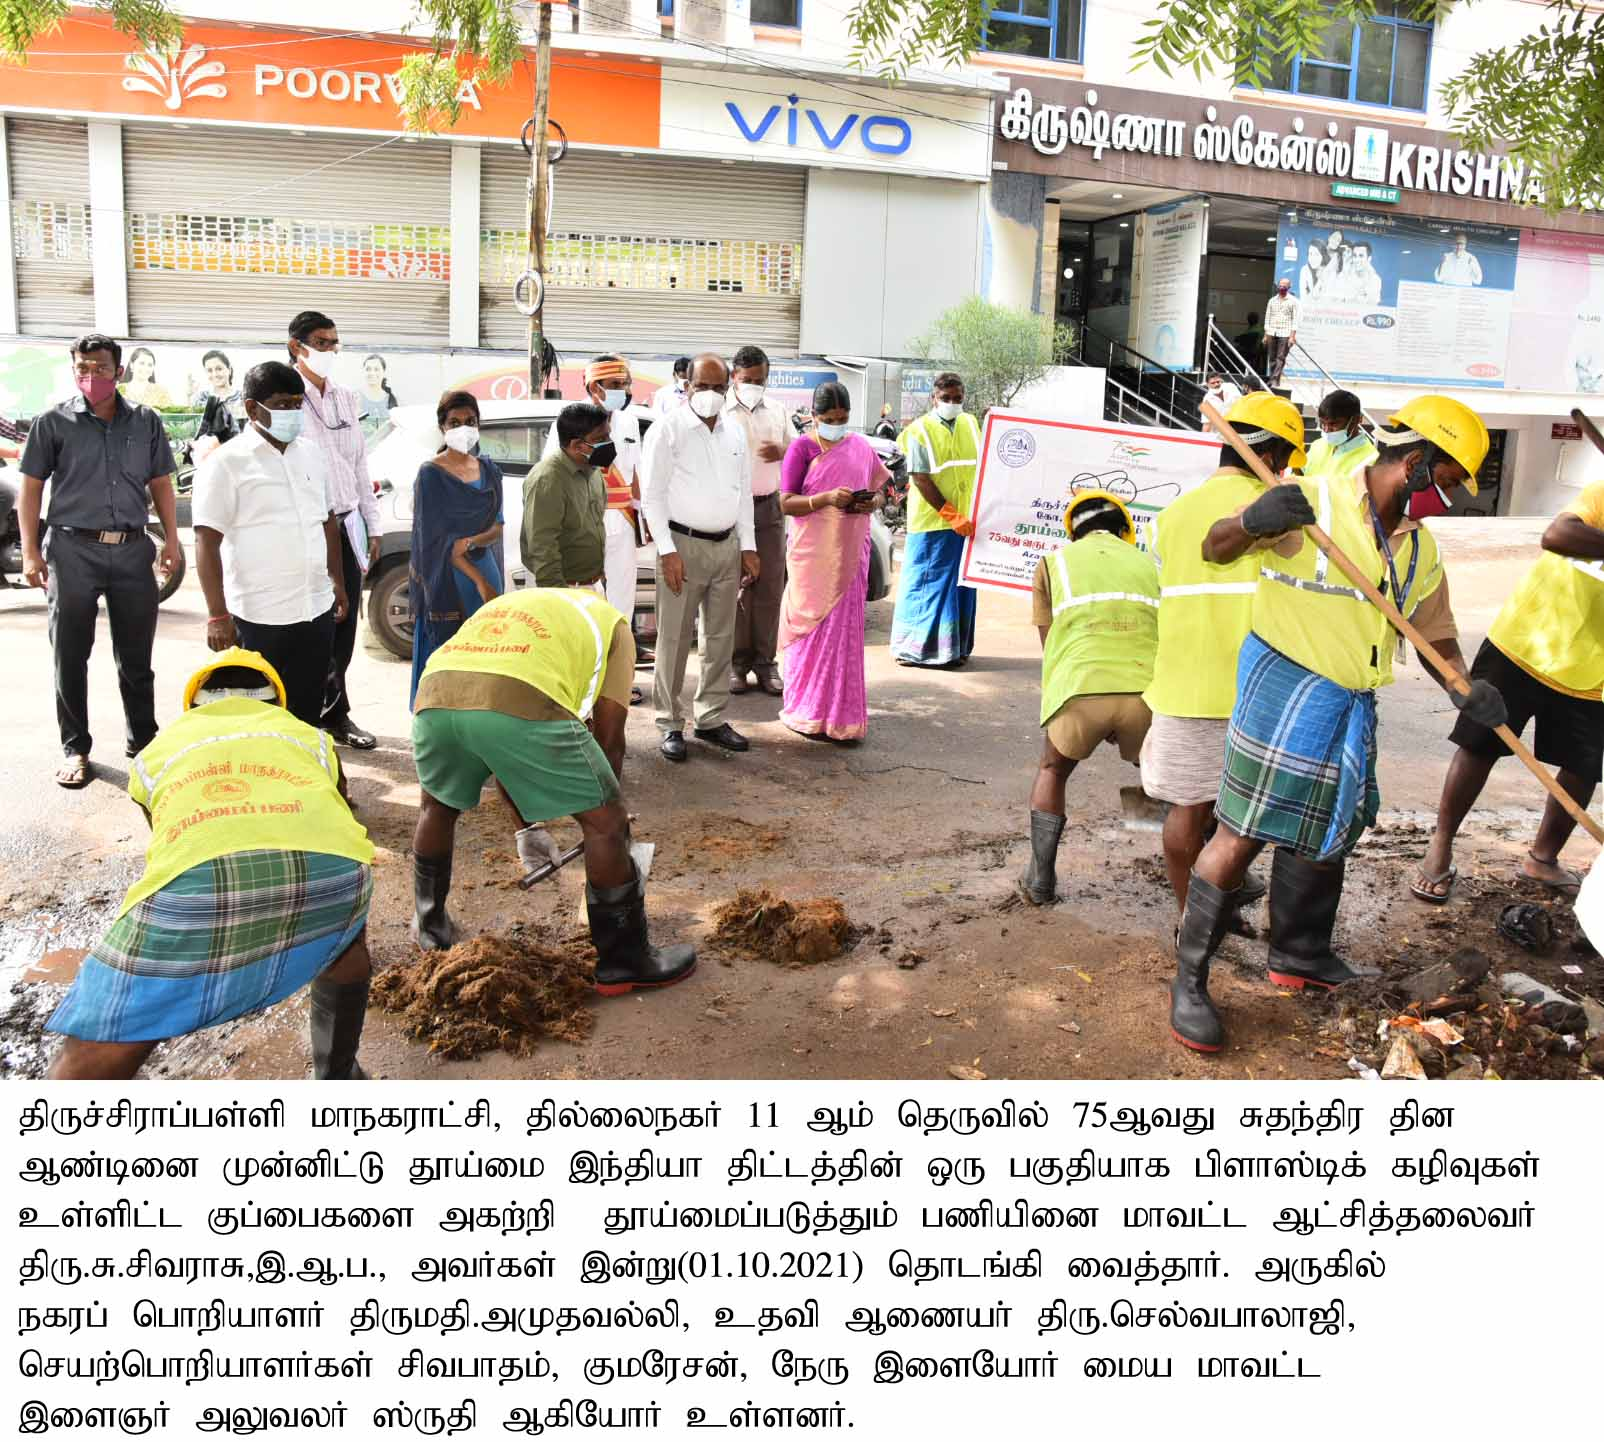 District Collector started Swachsh Bharat Mission on 01.10.2021